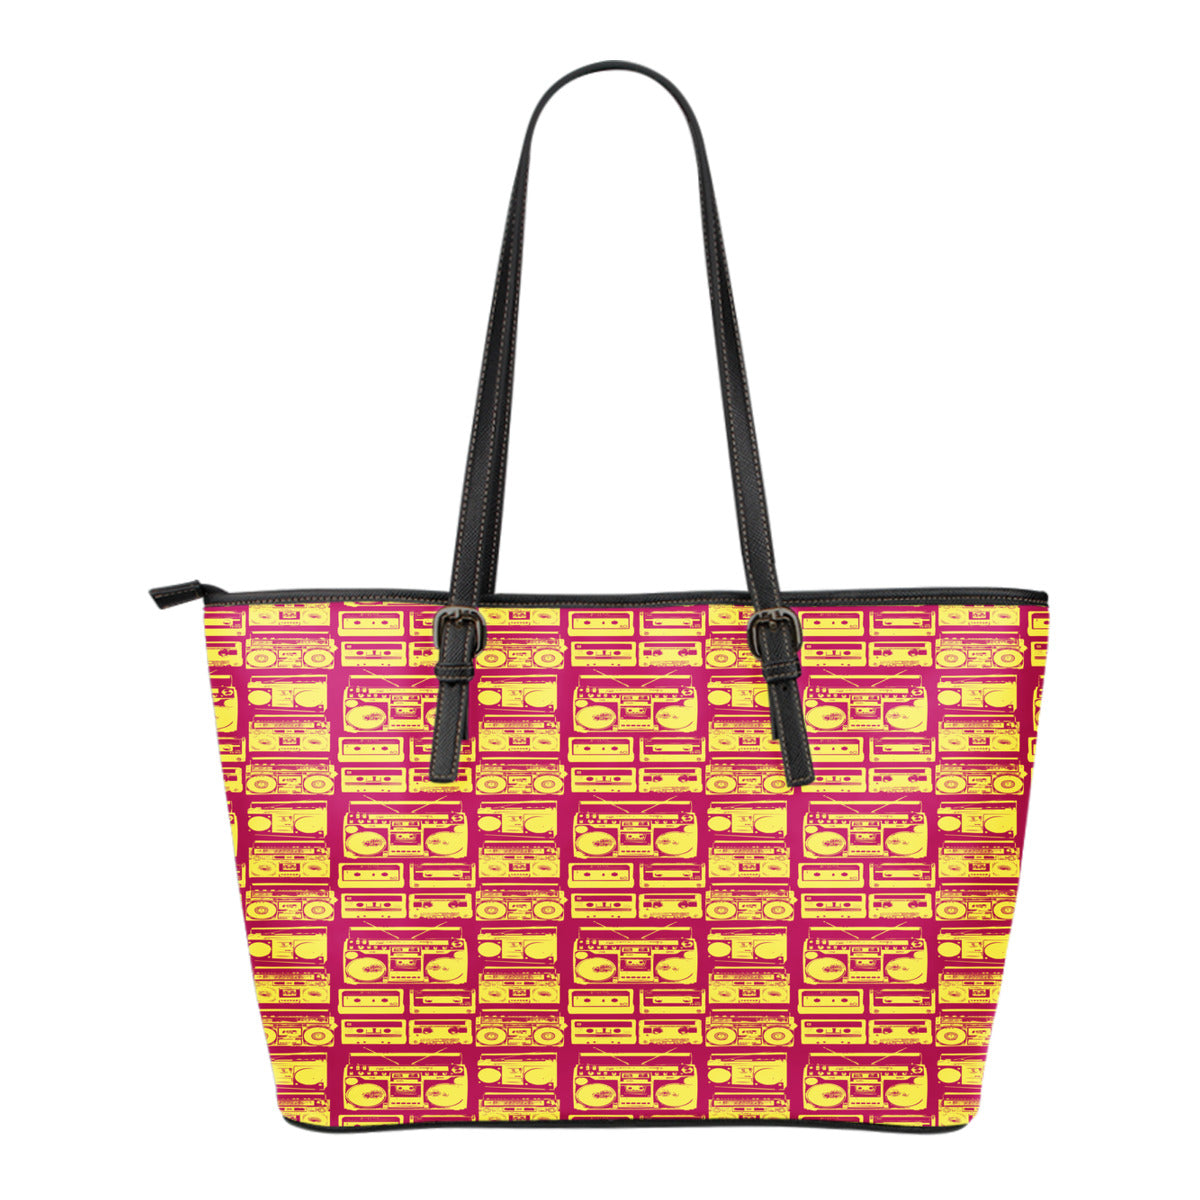 80s Boombox Themed Design C9 Women Small Leather Tote Bag